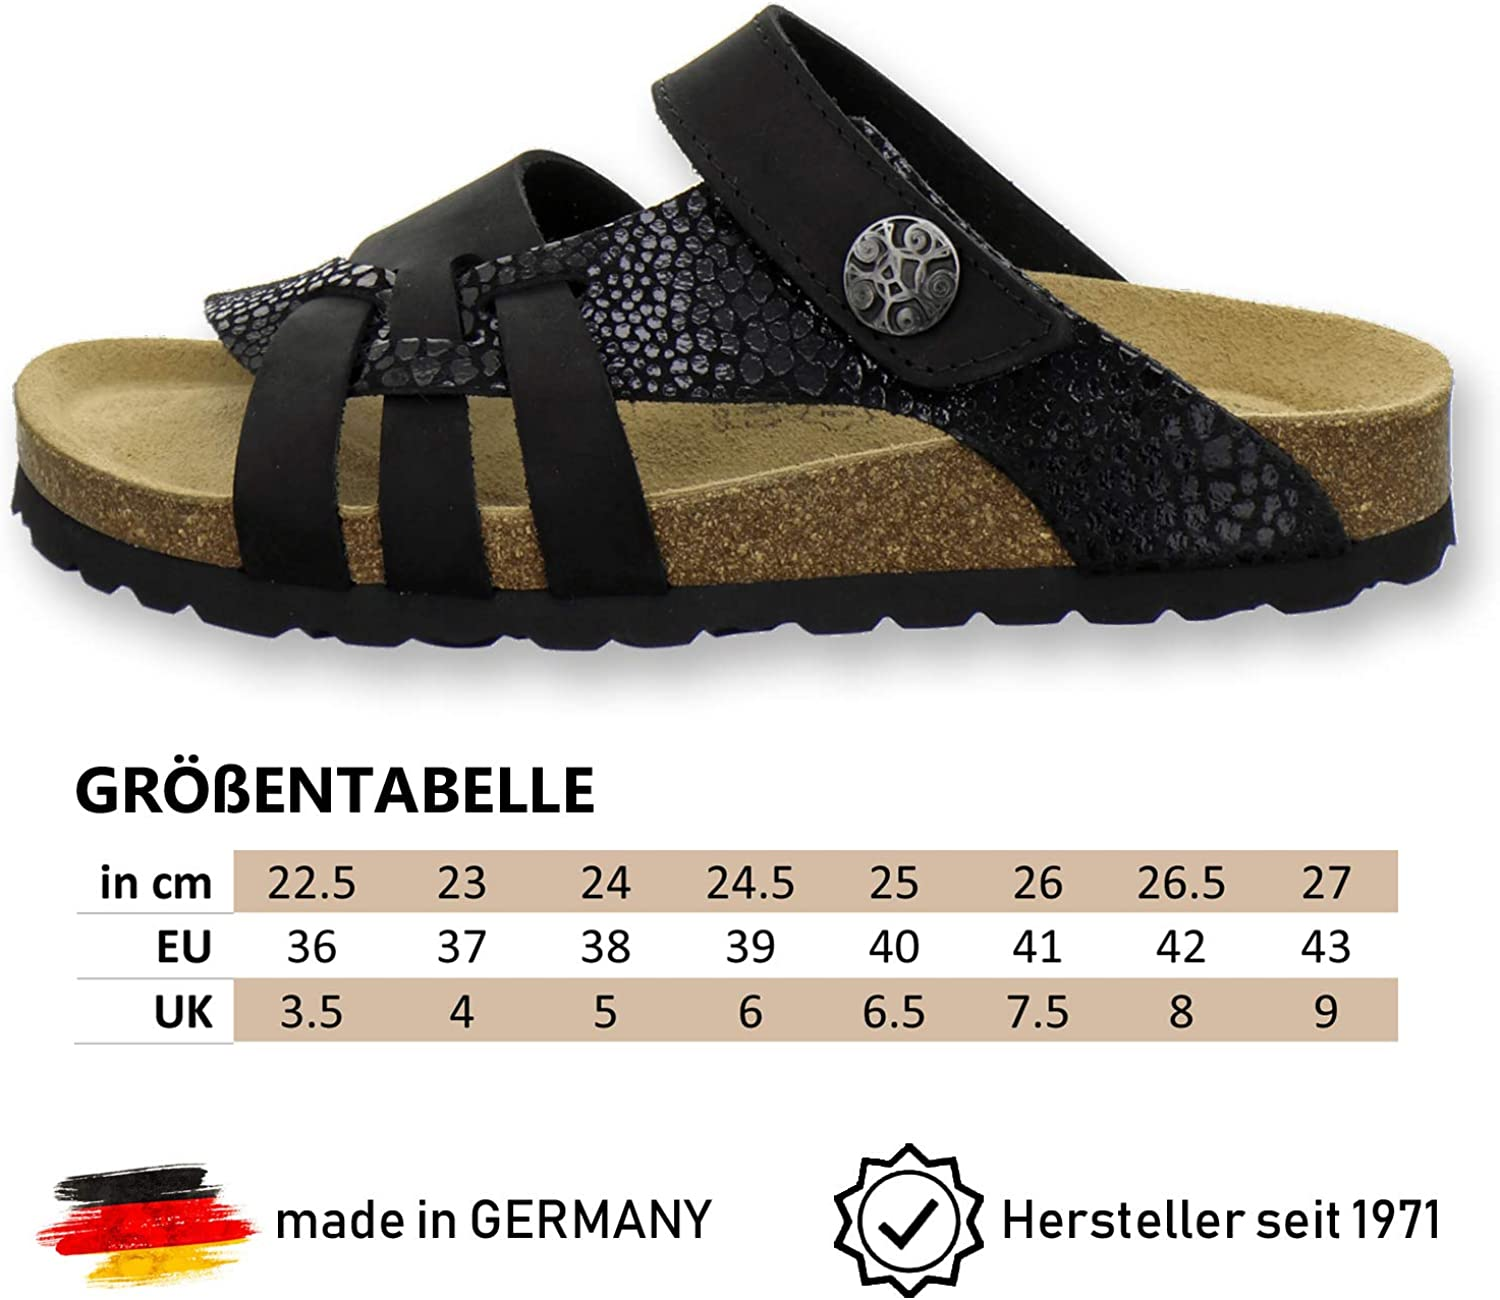 AFS Shoes 2120 Comfortable Womens Leather Mules Slippers Handmade in Germany Fashionable Sandals